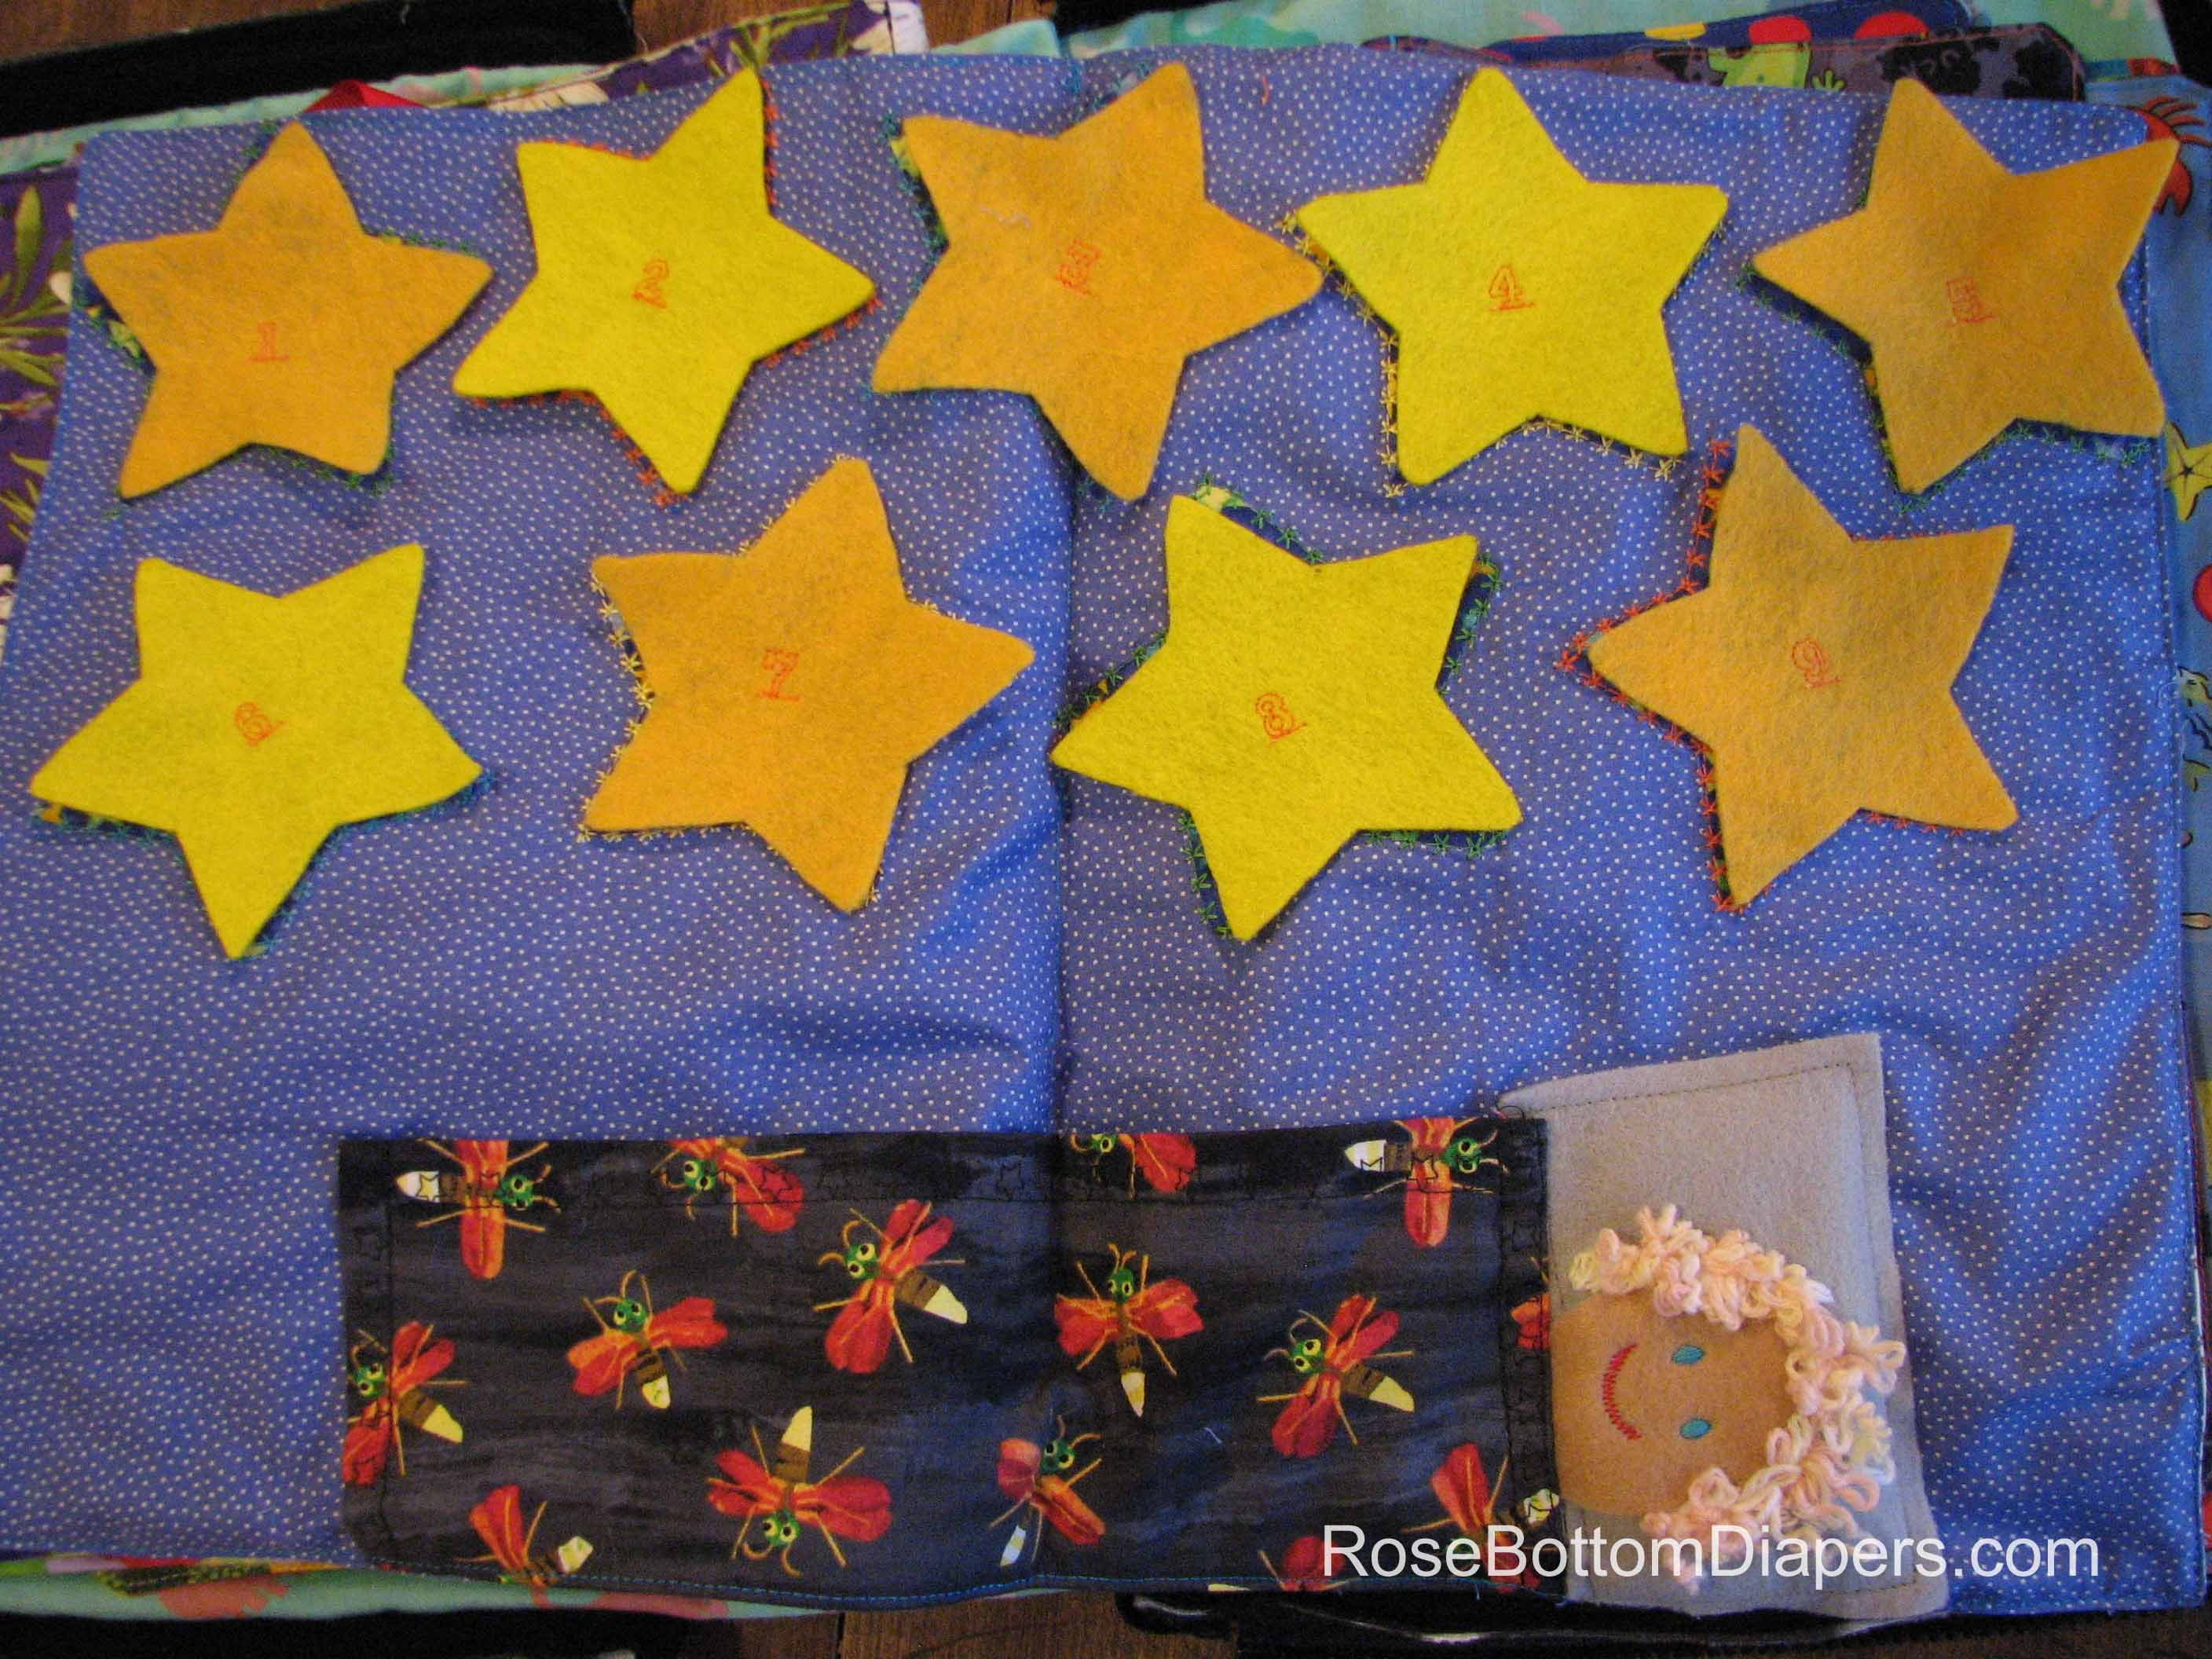 Twinkle twinkle little star quiet book page for counting and matching shapes. Busy book ideas at RoseBottomDiapers.com